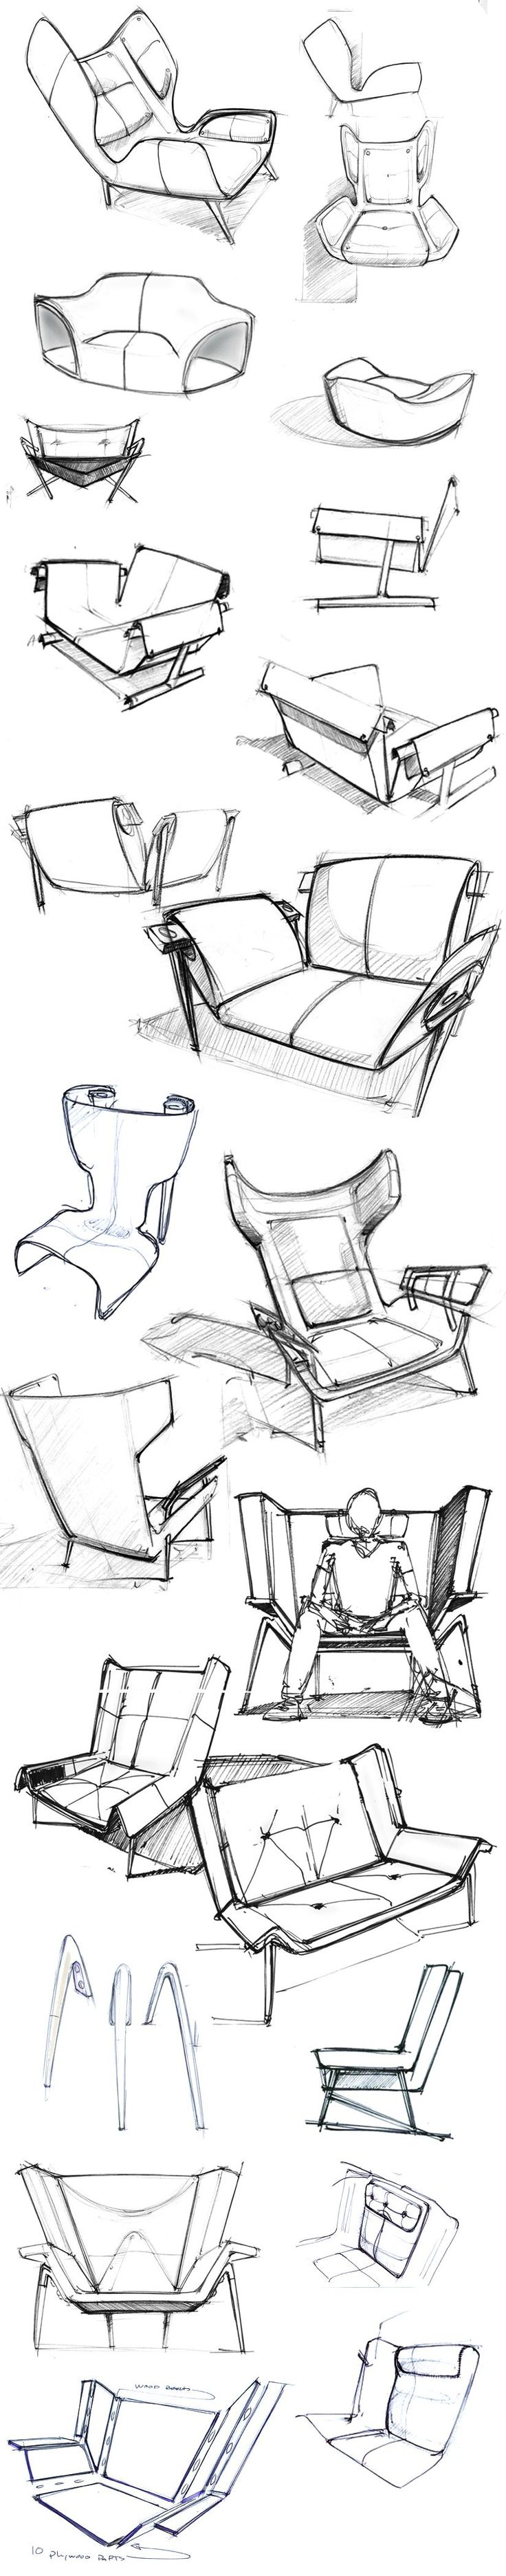 Furniture Sketches Best 25 Sketch Design Ideas On Pinterest Product Design